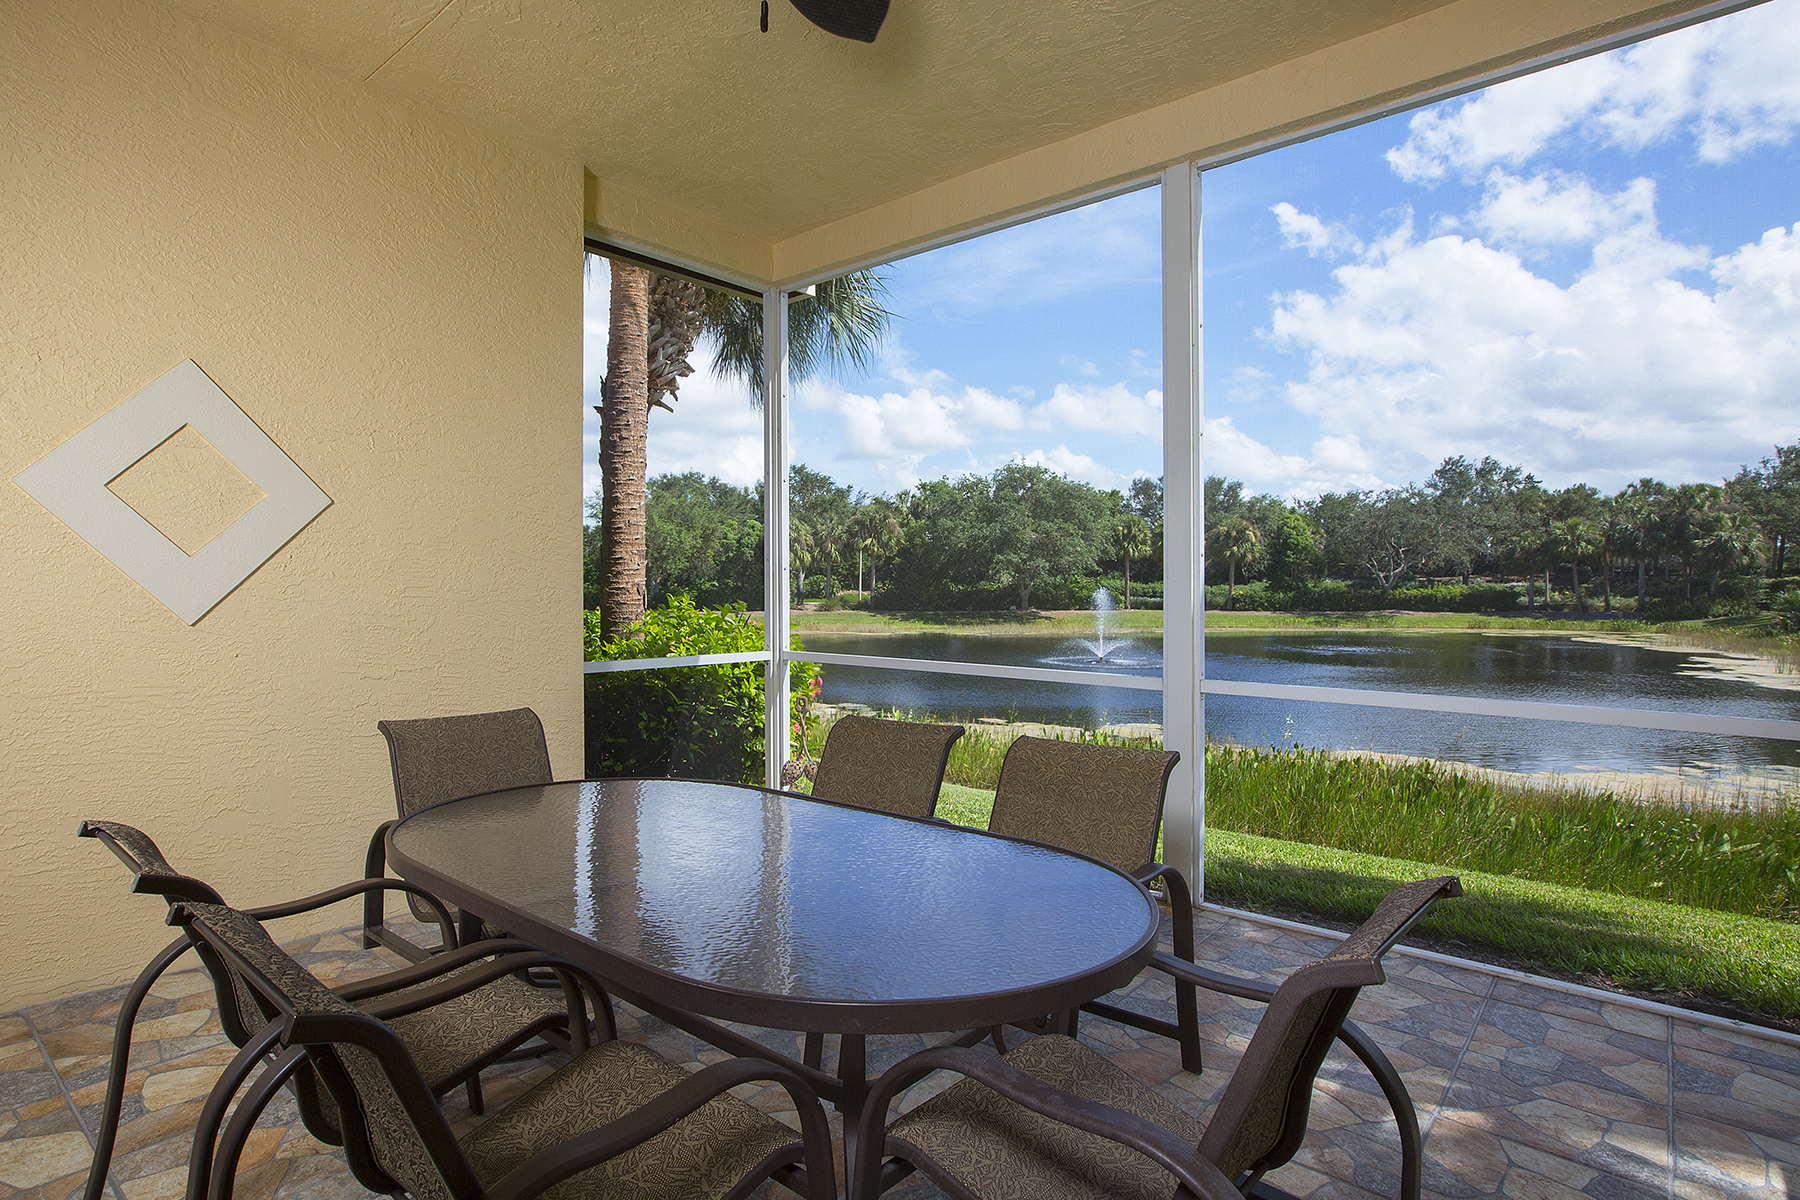 Townhouse for Sale at PELICAN LANDING - COSTA DEL SOL 3425 Marbella Ct, Bonita Springs, Florida 34134 United States